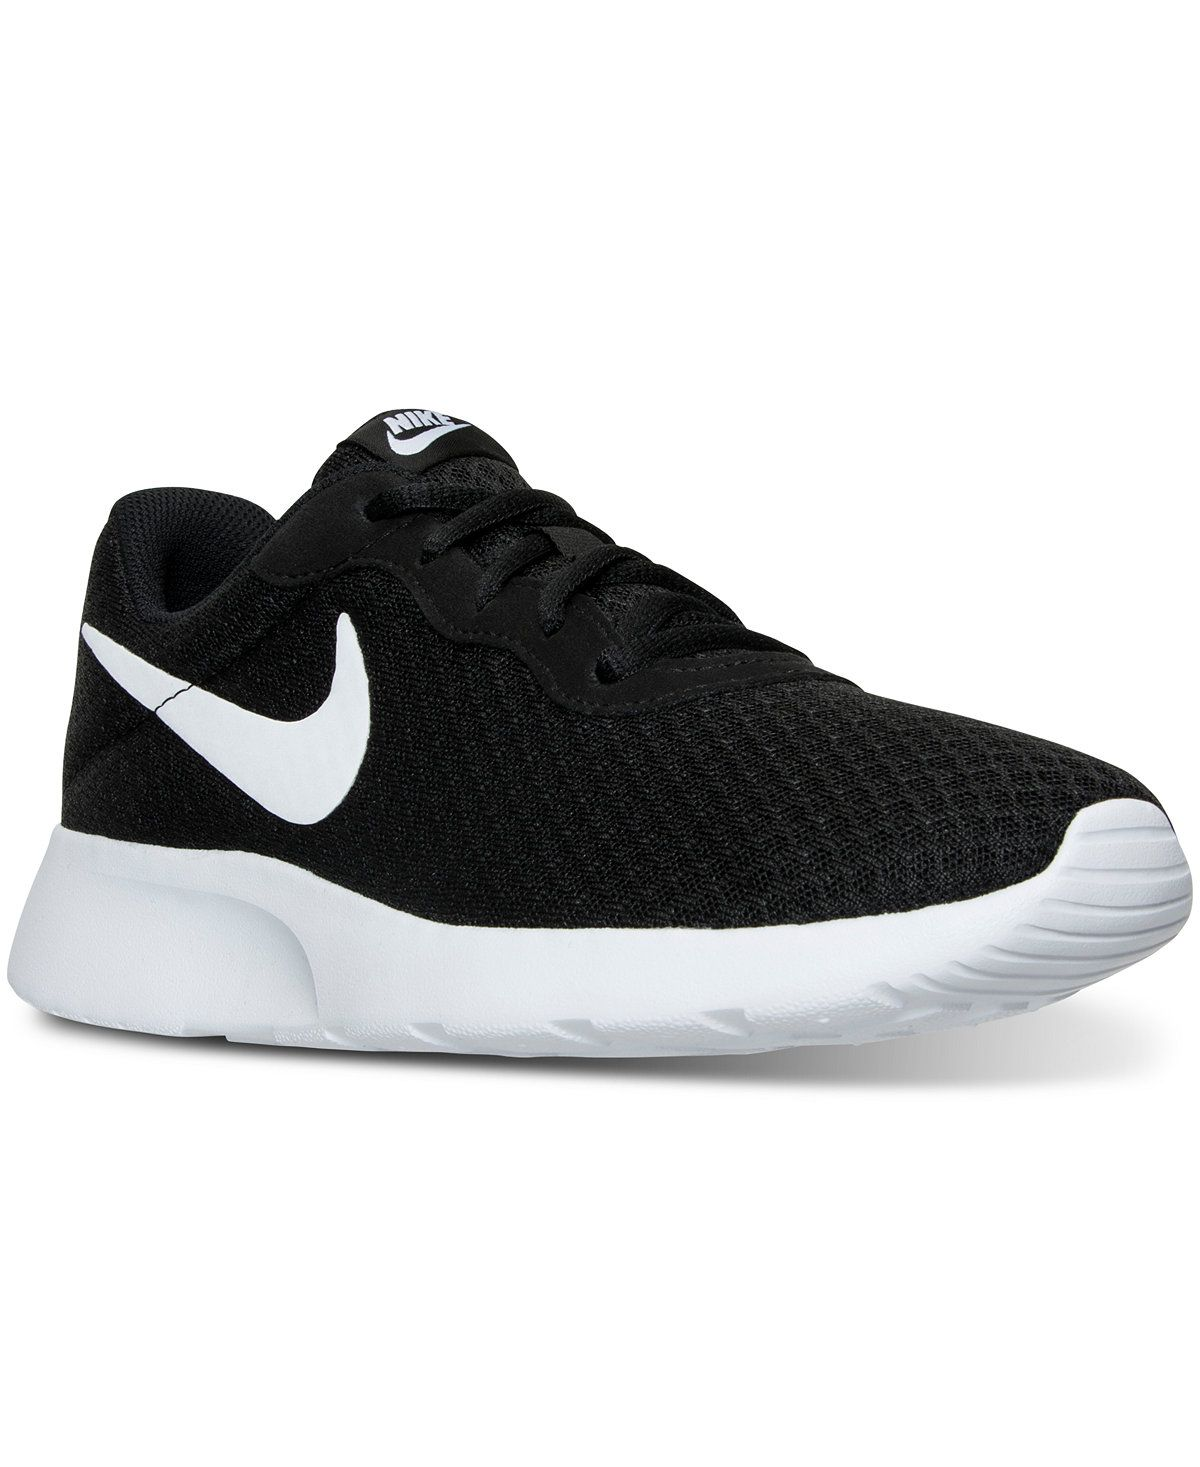 a6a8c45e119c Nike Women s Tanjun Casual Sneakers from Finish Line - Finish Line Athletic  Sneakers - Shoes - Macy s